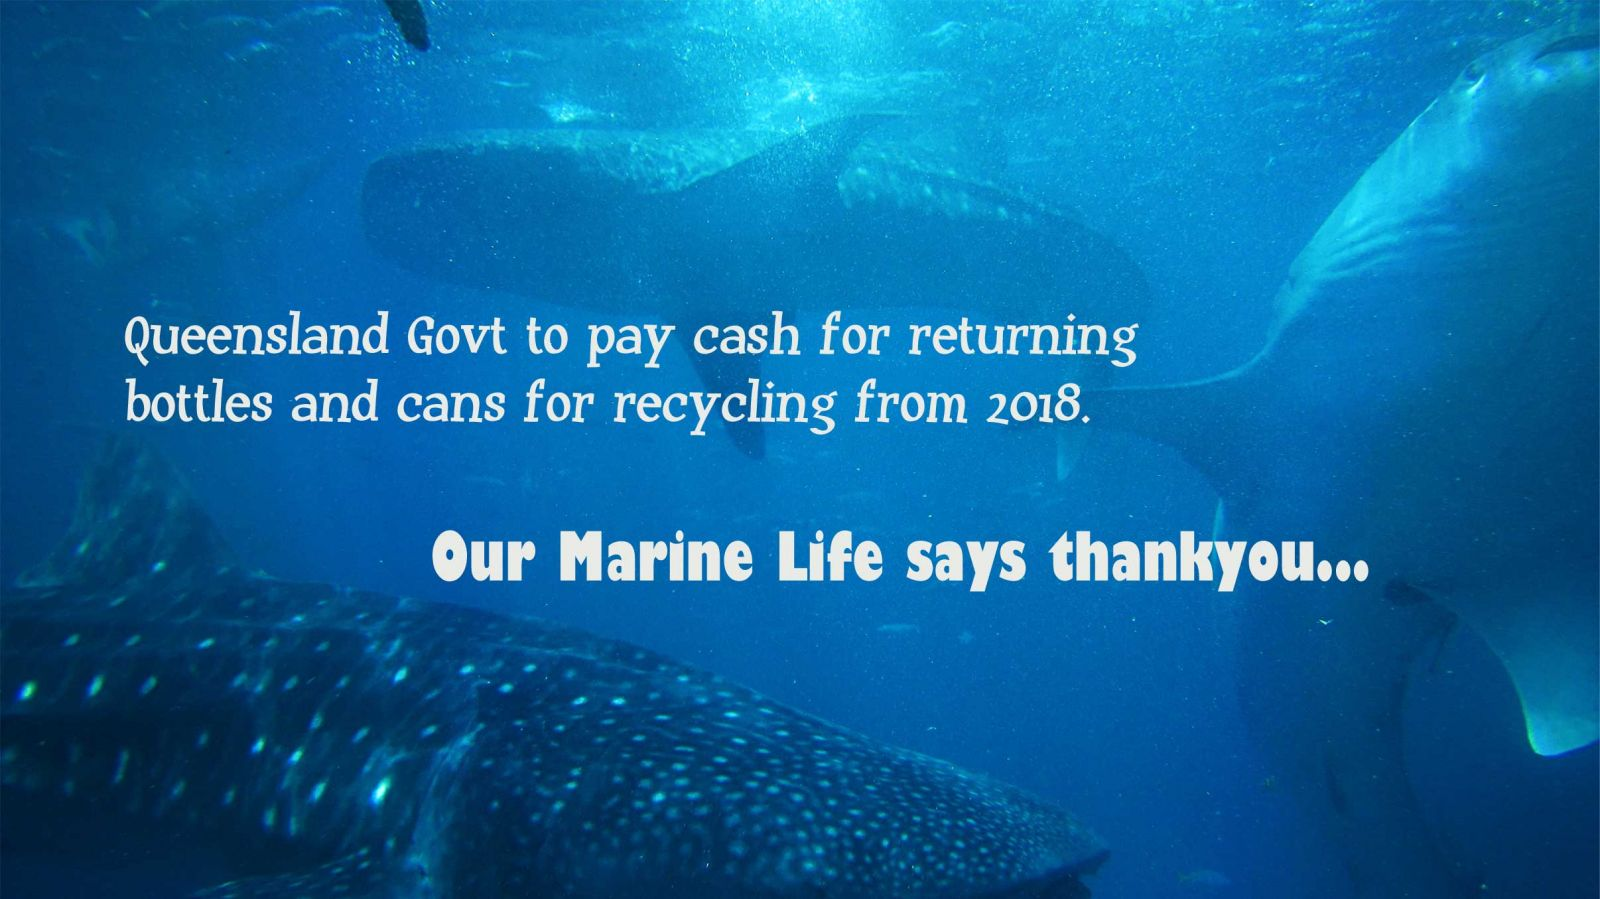 Cash for Cans - Qld recycling 2018